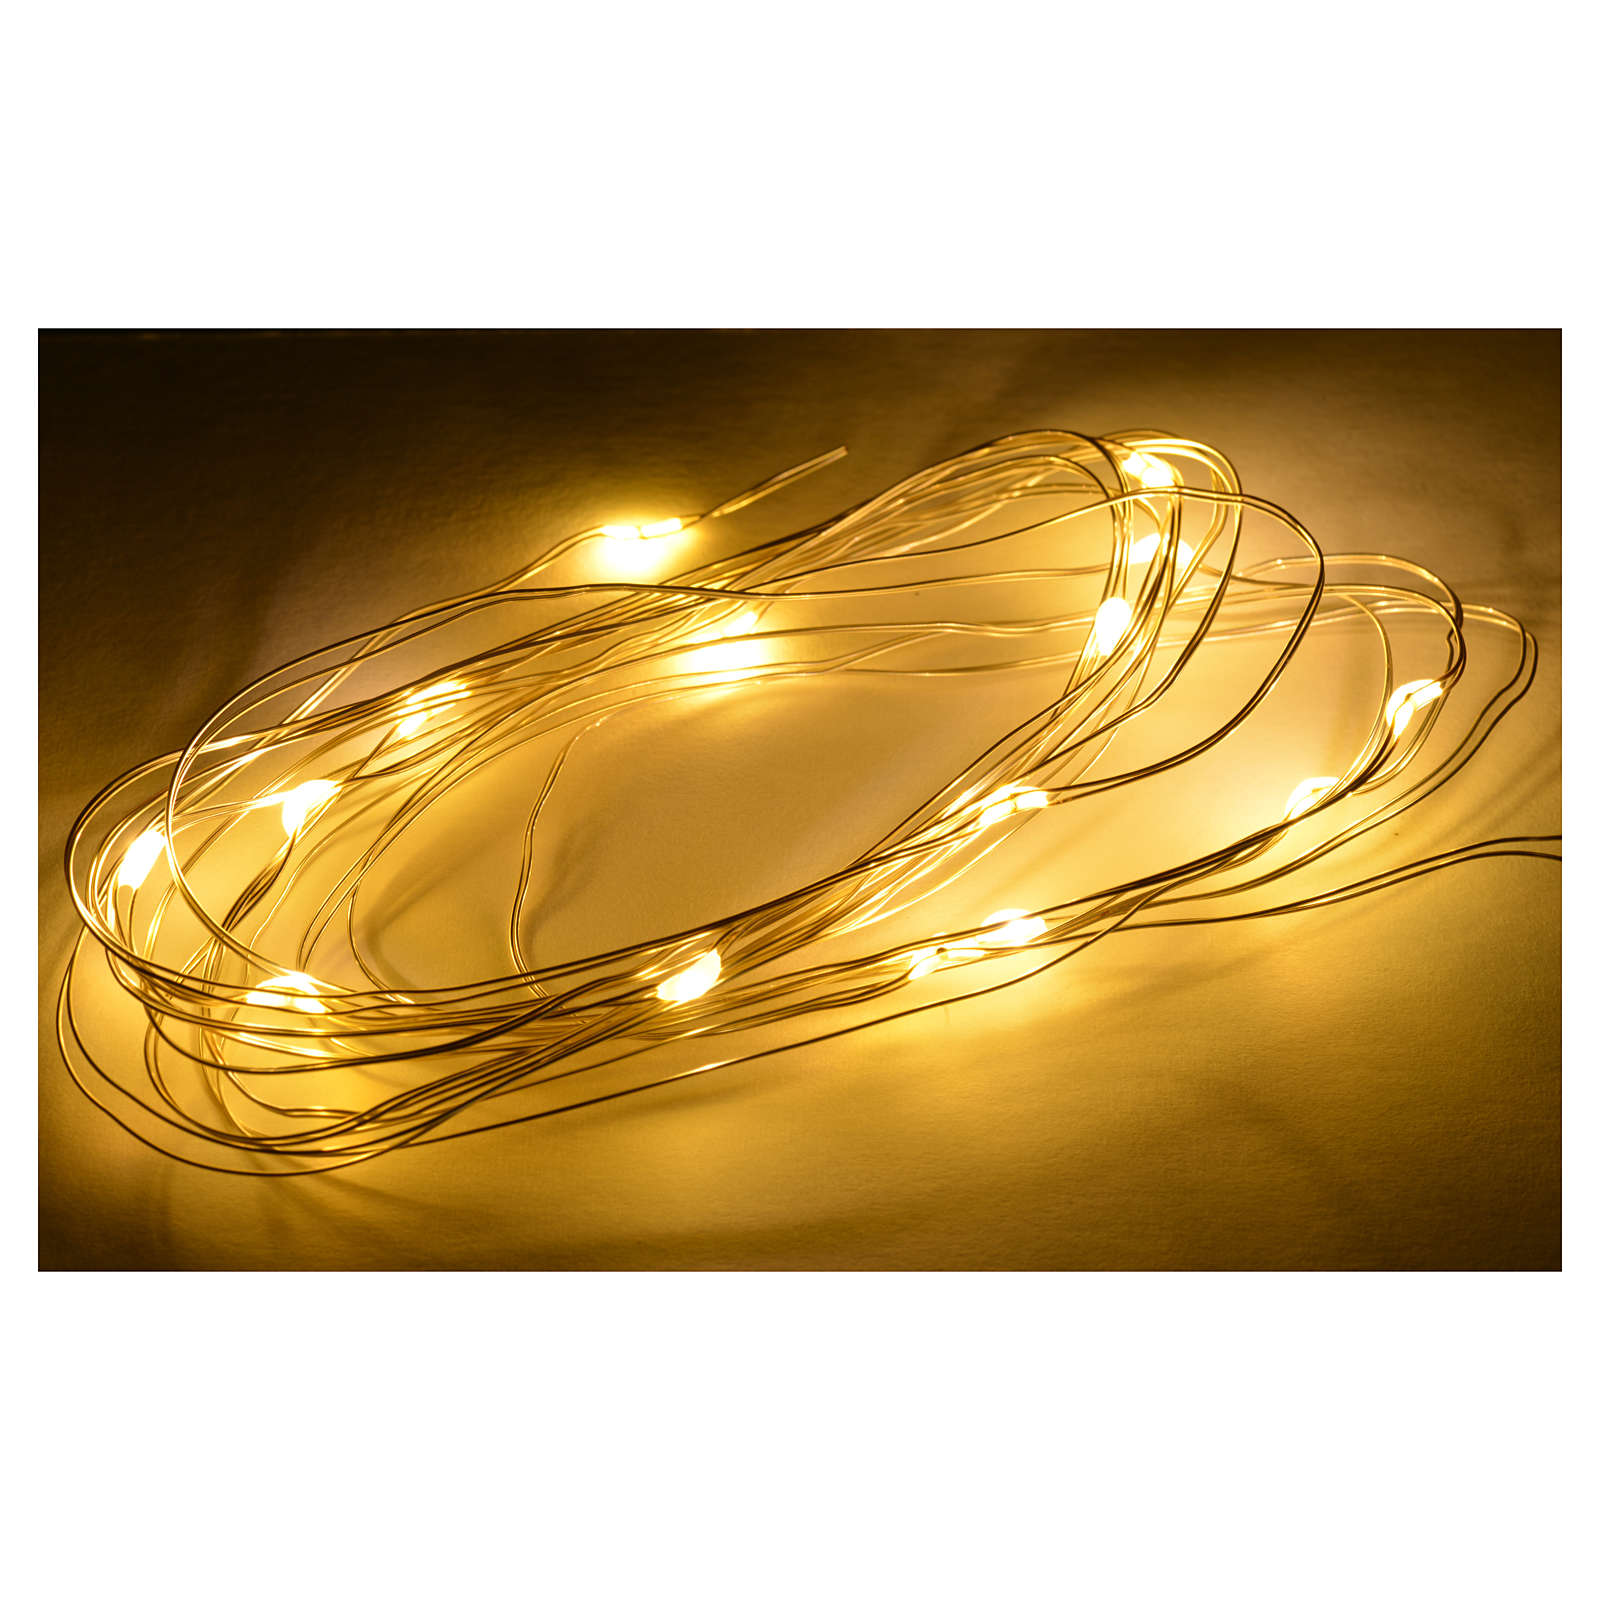 Nano led warm white 15 leds 3m for nativity scene 4